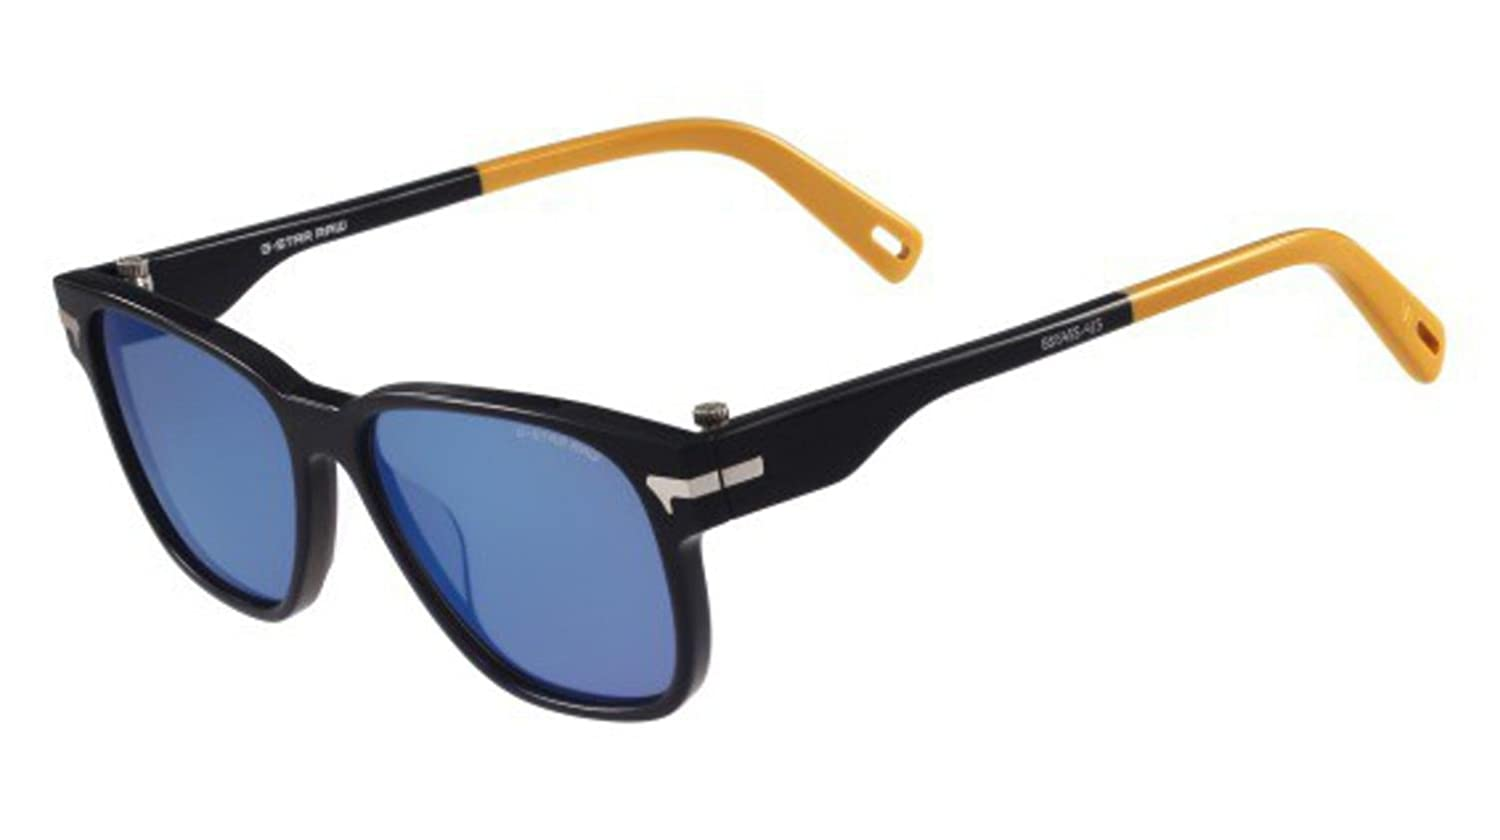 G-STAR RAW GS645S Thin DENDAR 415 54 Gafas de sol, Navy ...